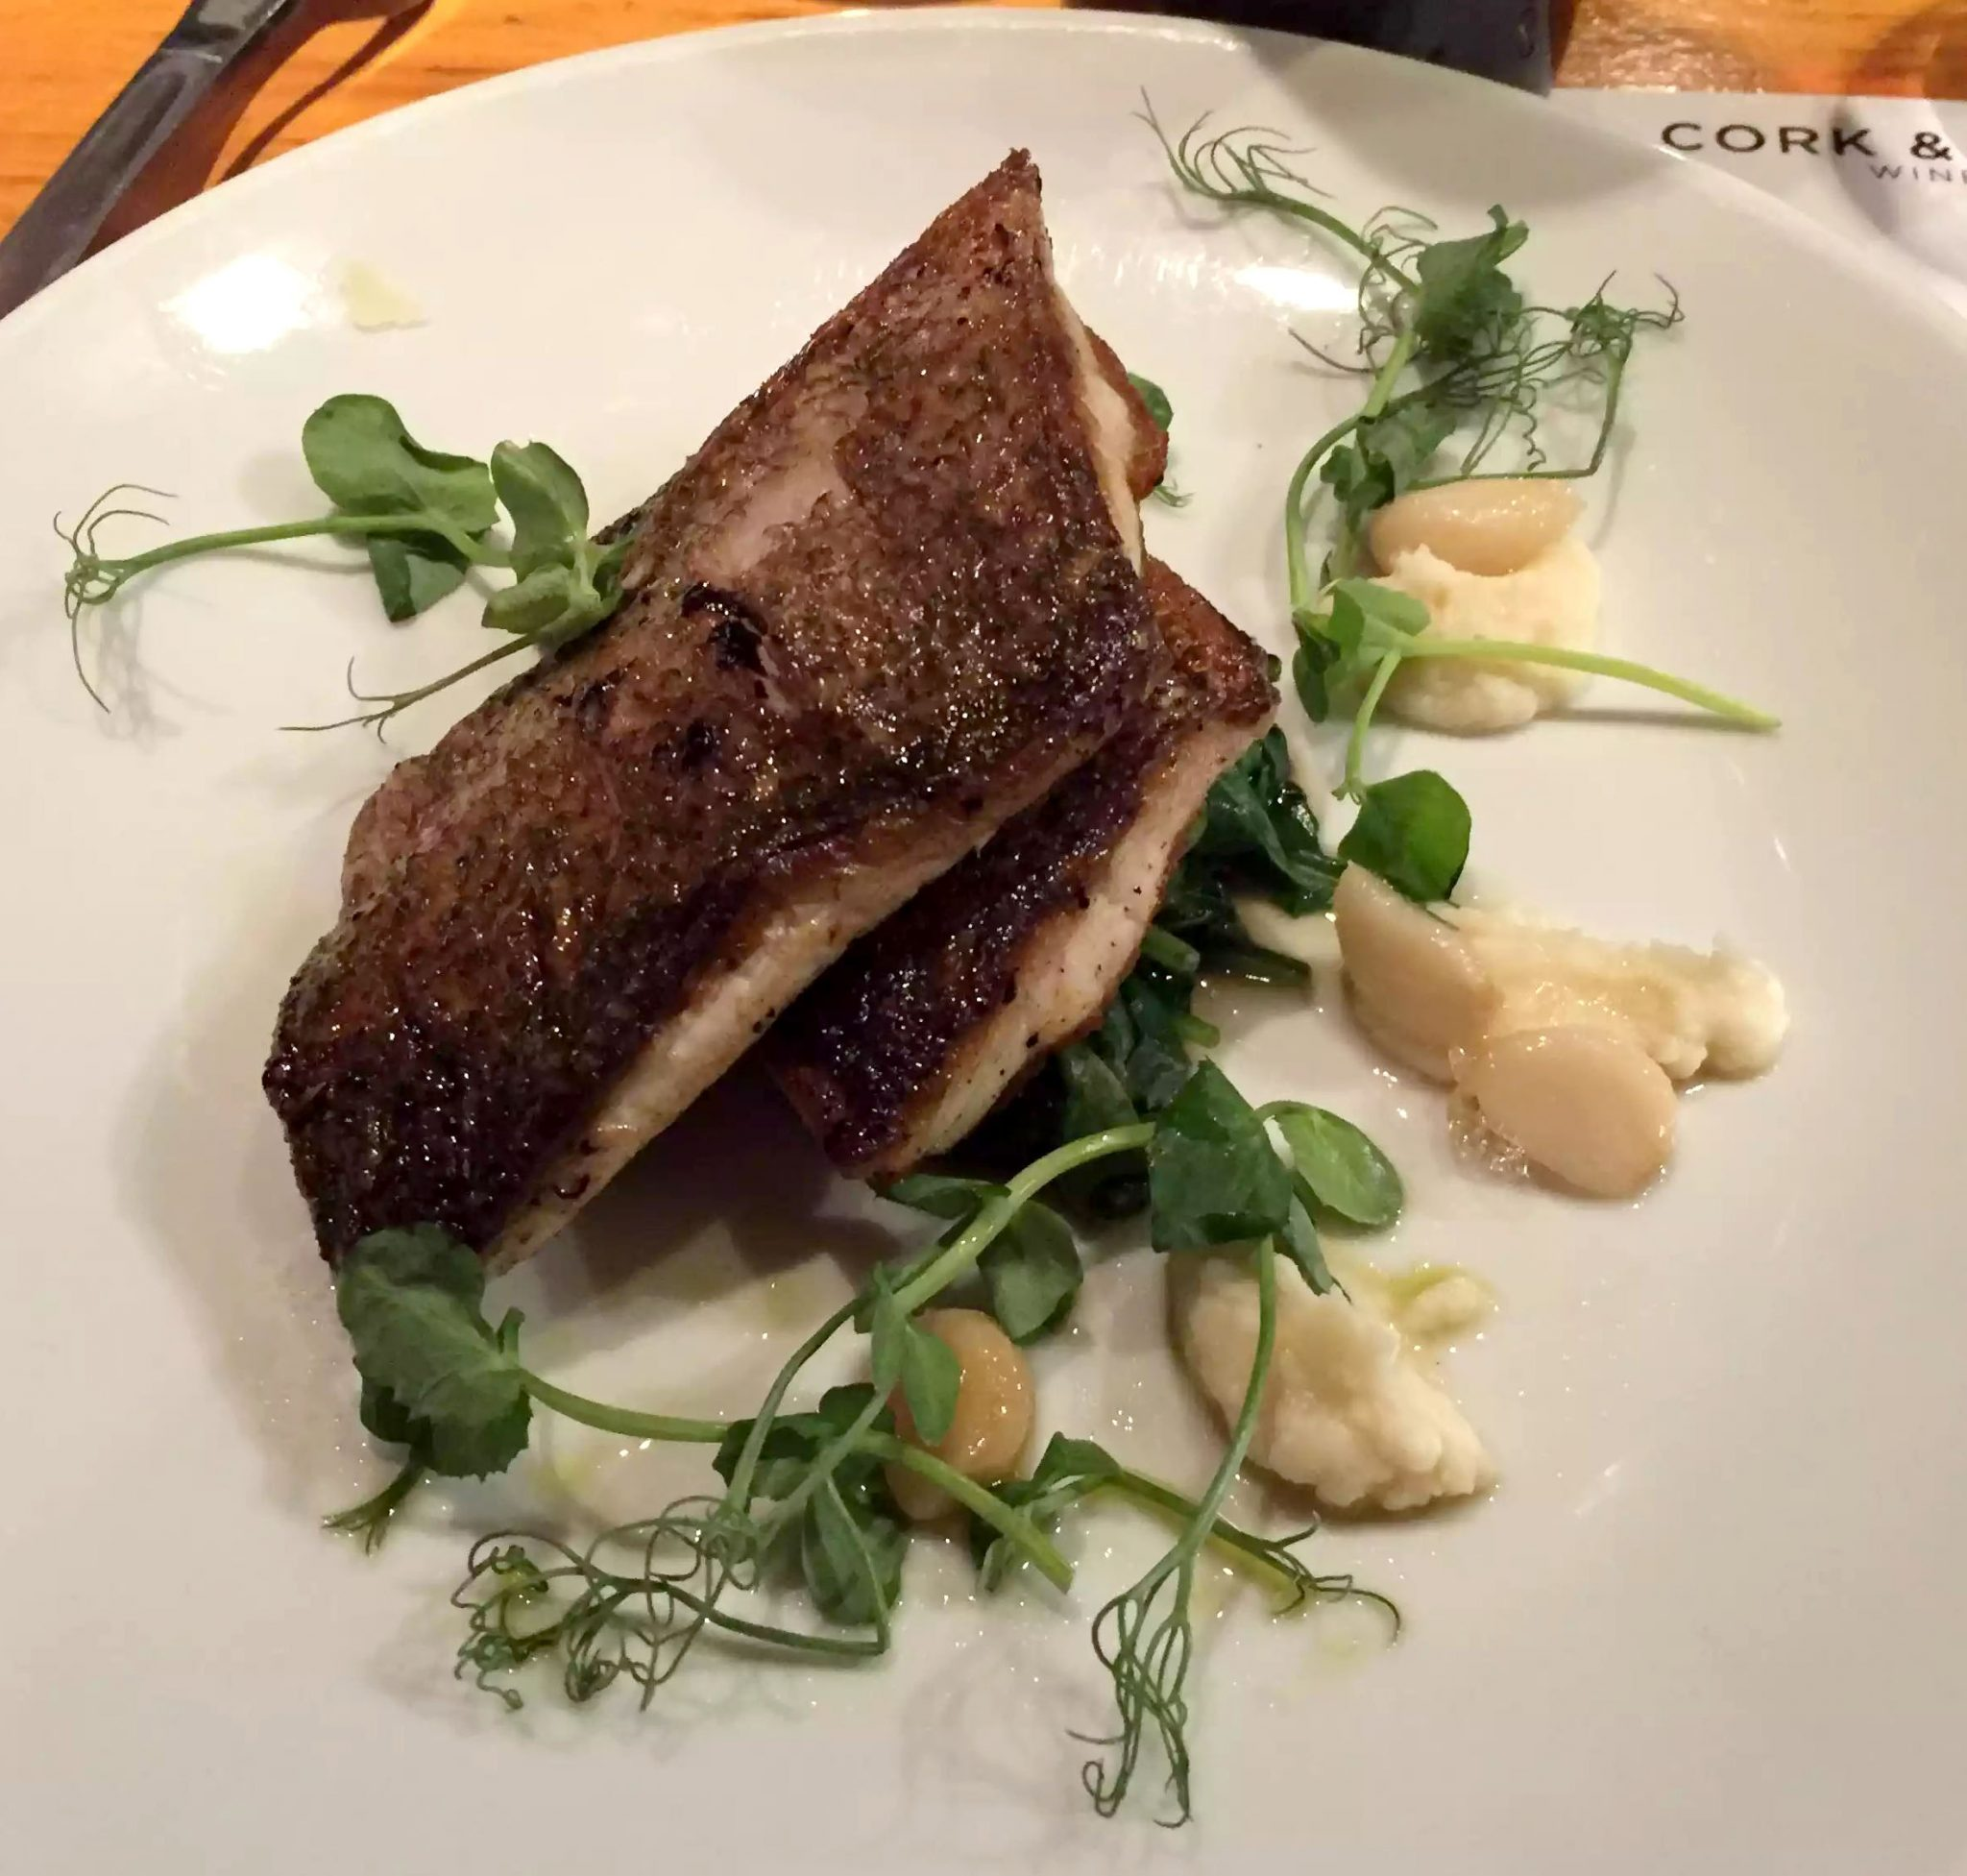 Cork & Bottle Leicester Square London Birthday Dinner Restaurant Wine Sea Bass Cauliflower Puree Spinach